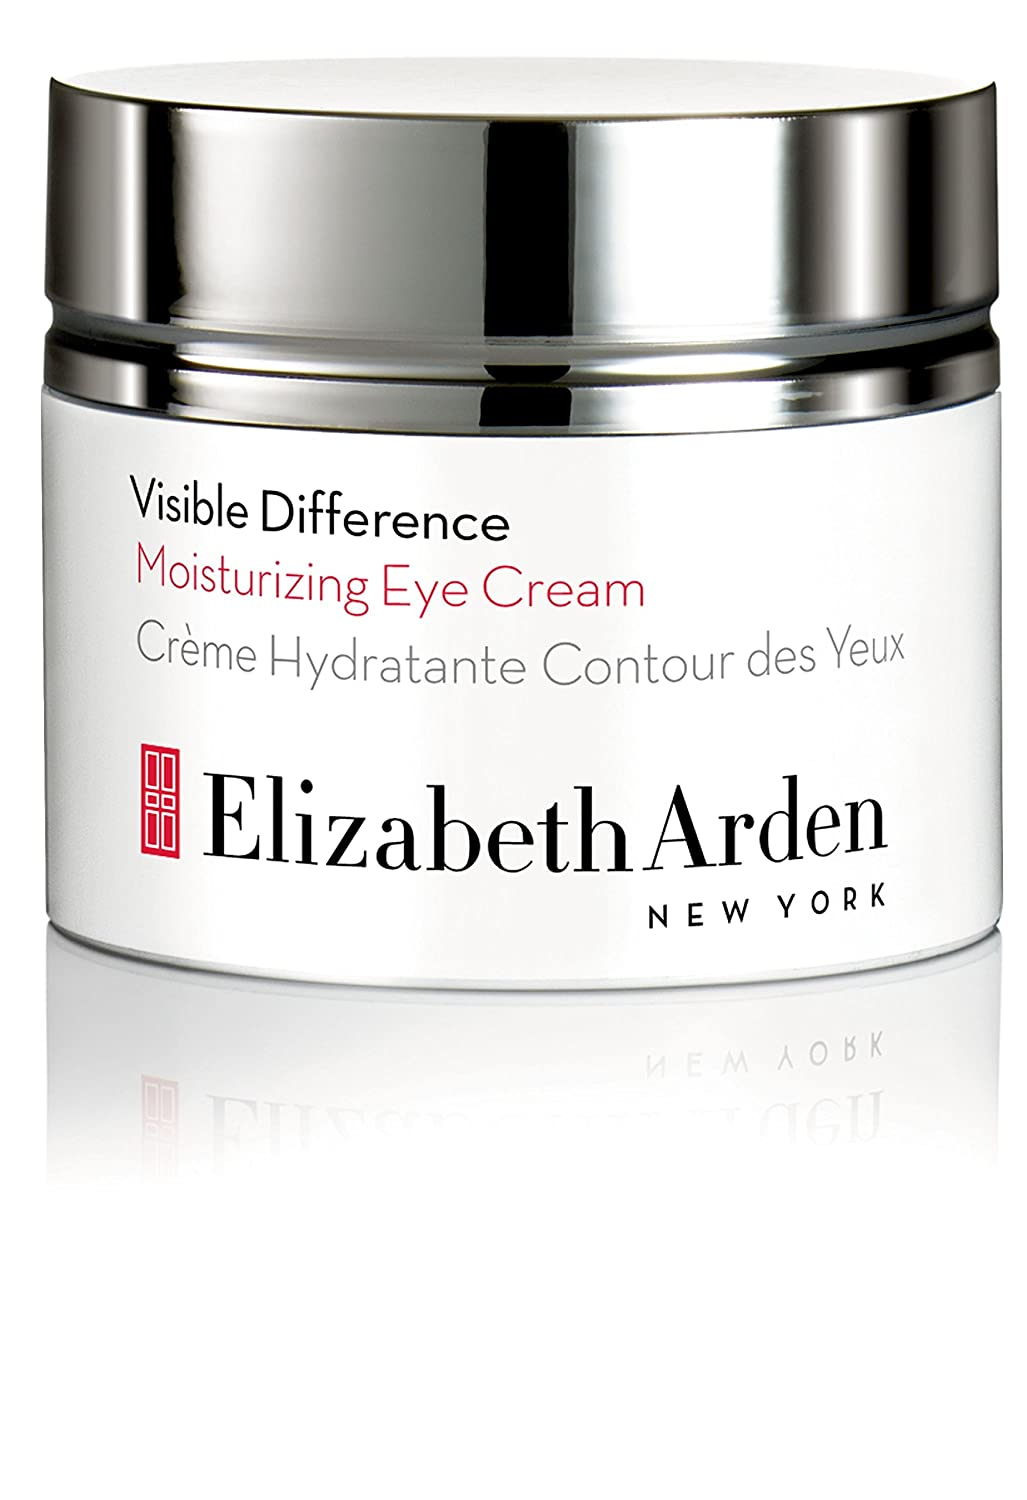 Elizabeth Arden Visible Difference Moisturizing Eye Cream, 0.5 Fl Oz